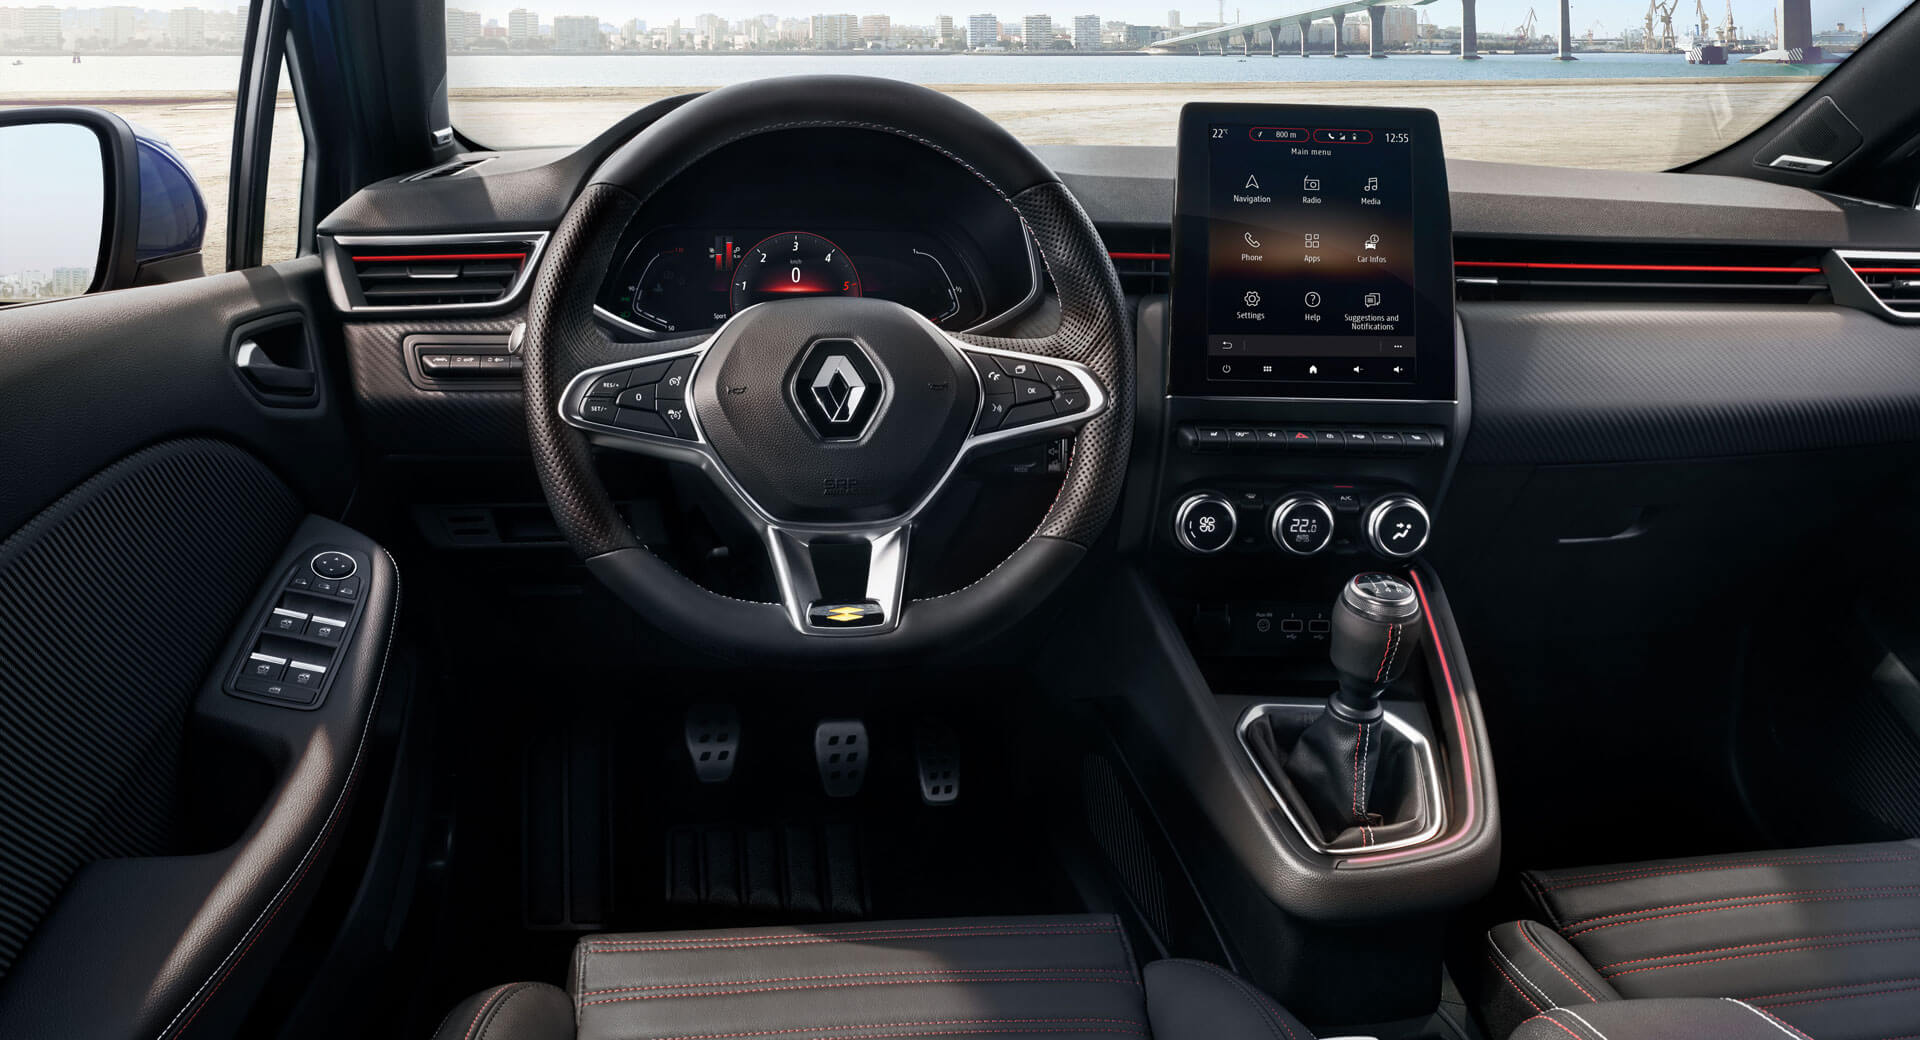 QnA VBage First Look Inside 2020 Renault Clio Reveals Striking Tech-Heavy Approach